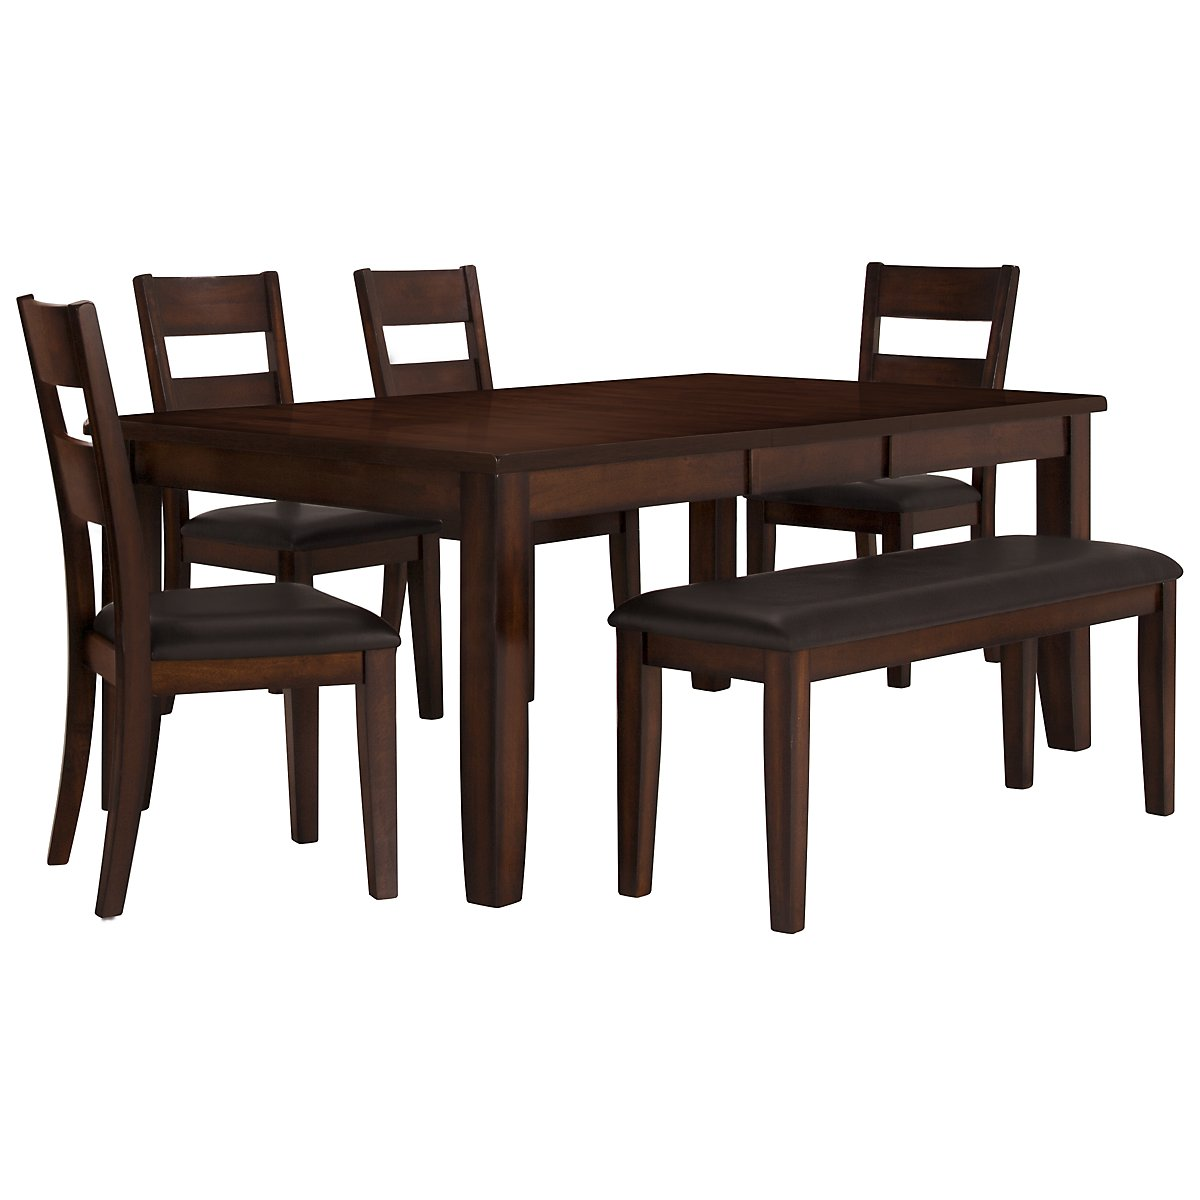 Mango2 Dark Tone Rectangular Table, 4 Chairs & Bench